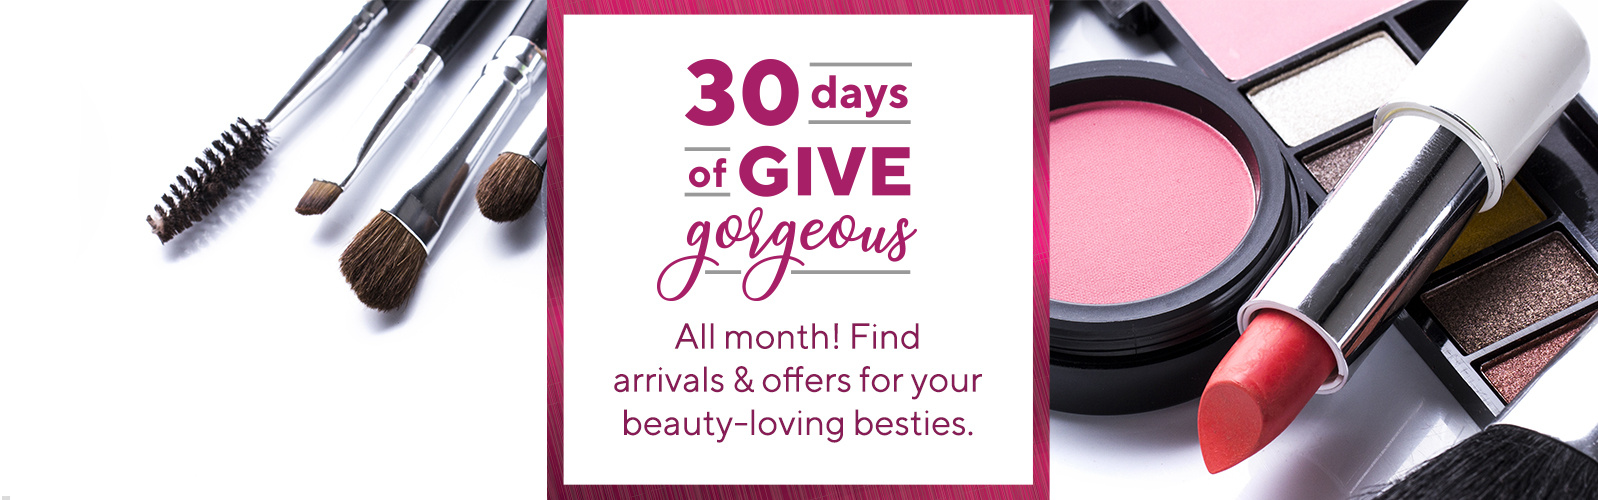 30 Days of Give Gorgeous logo  All month! Find arrivals & offers for your beauty-loving besties.